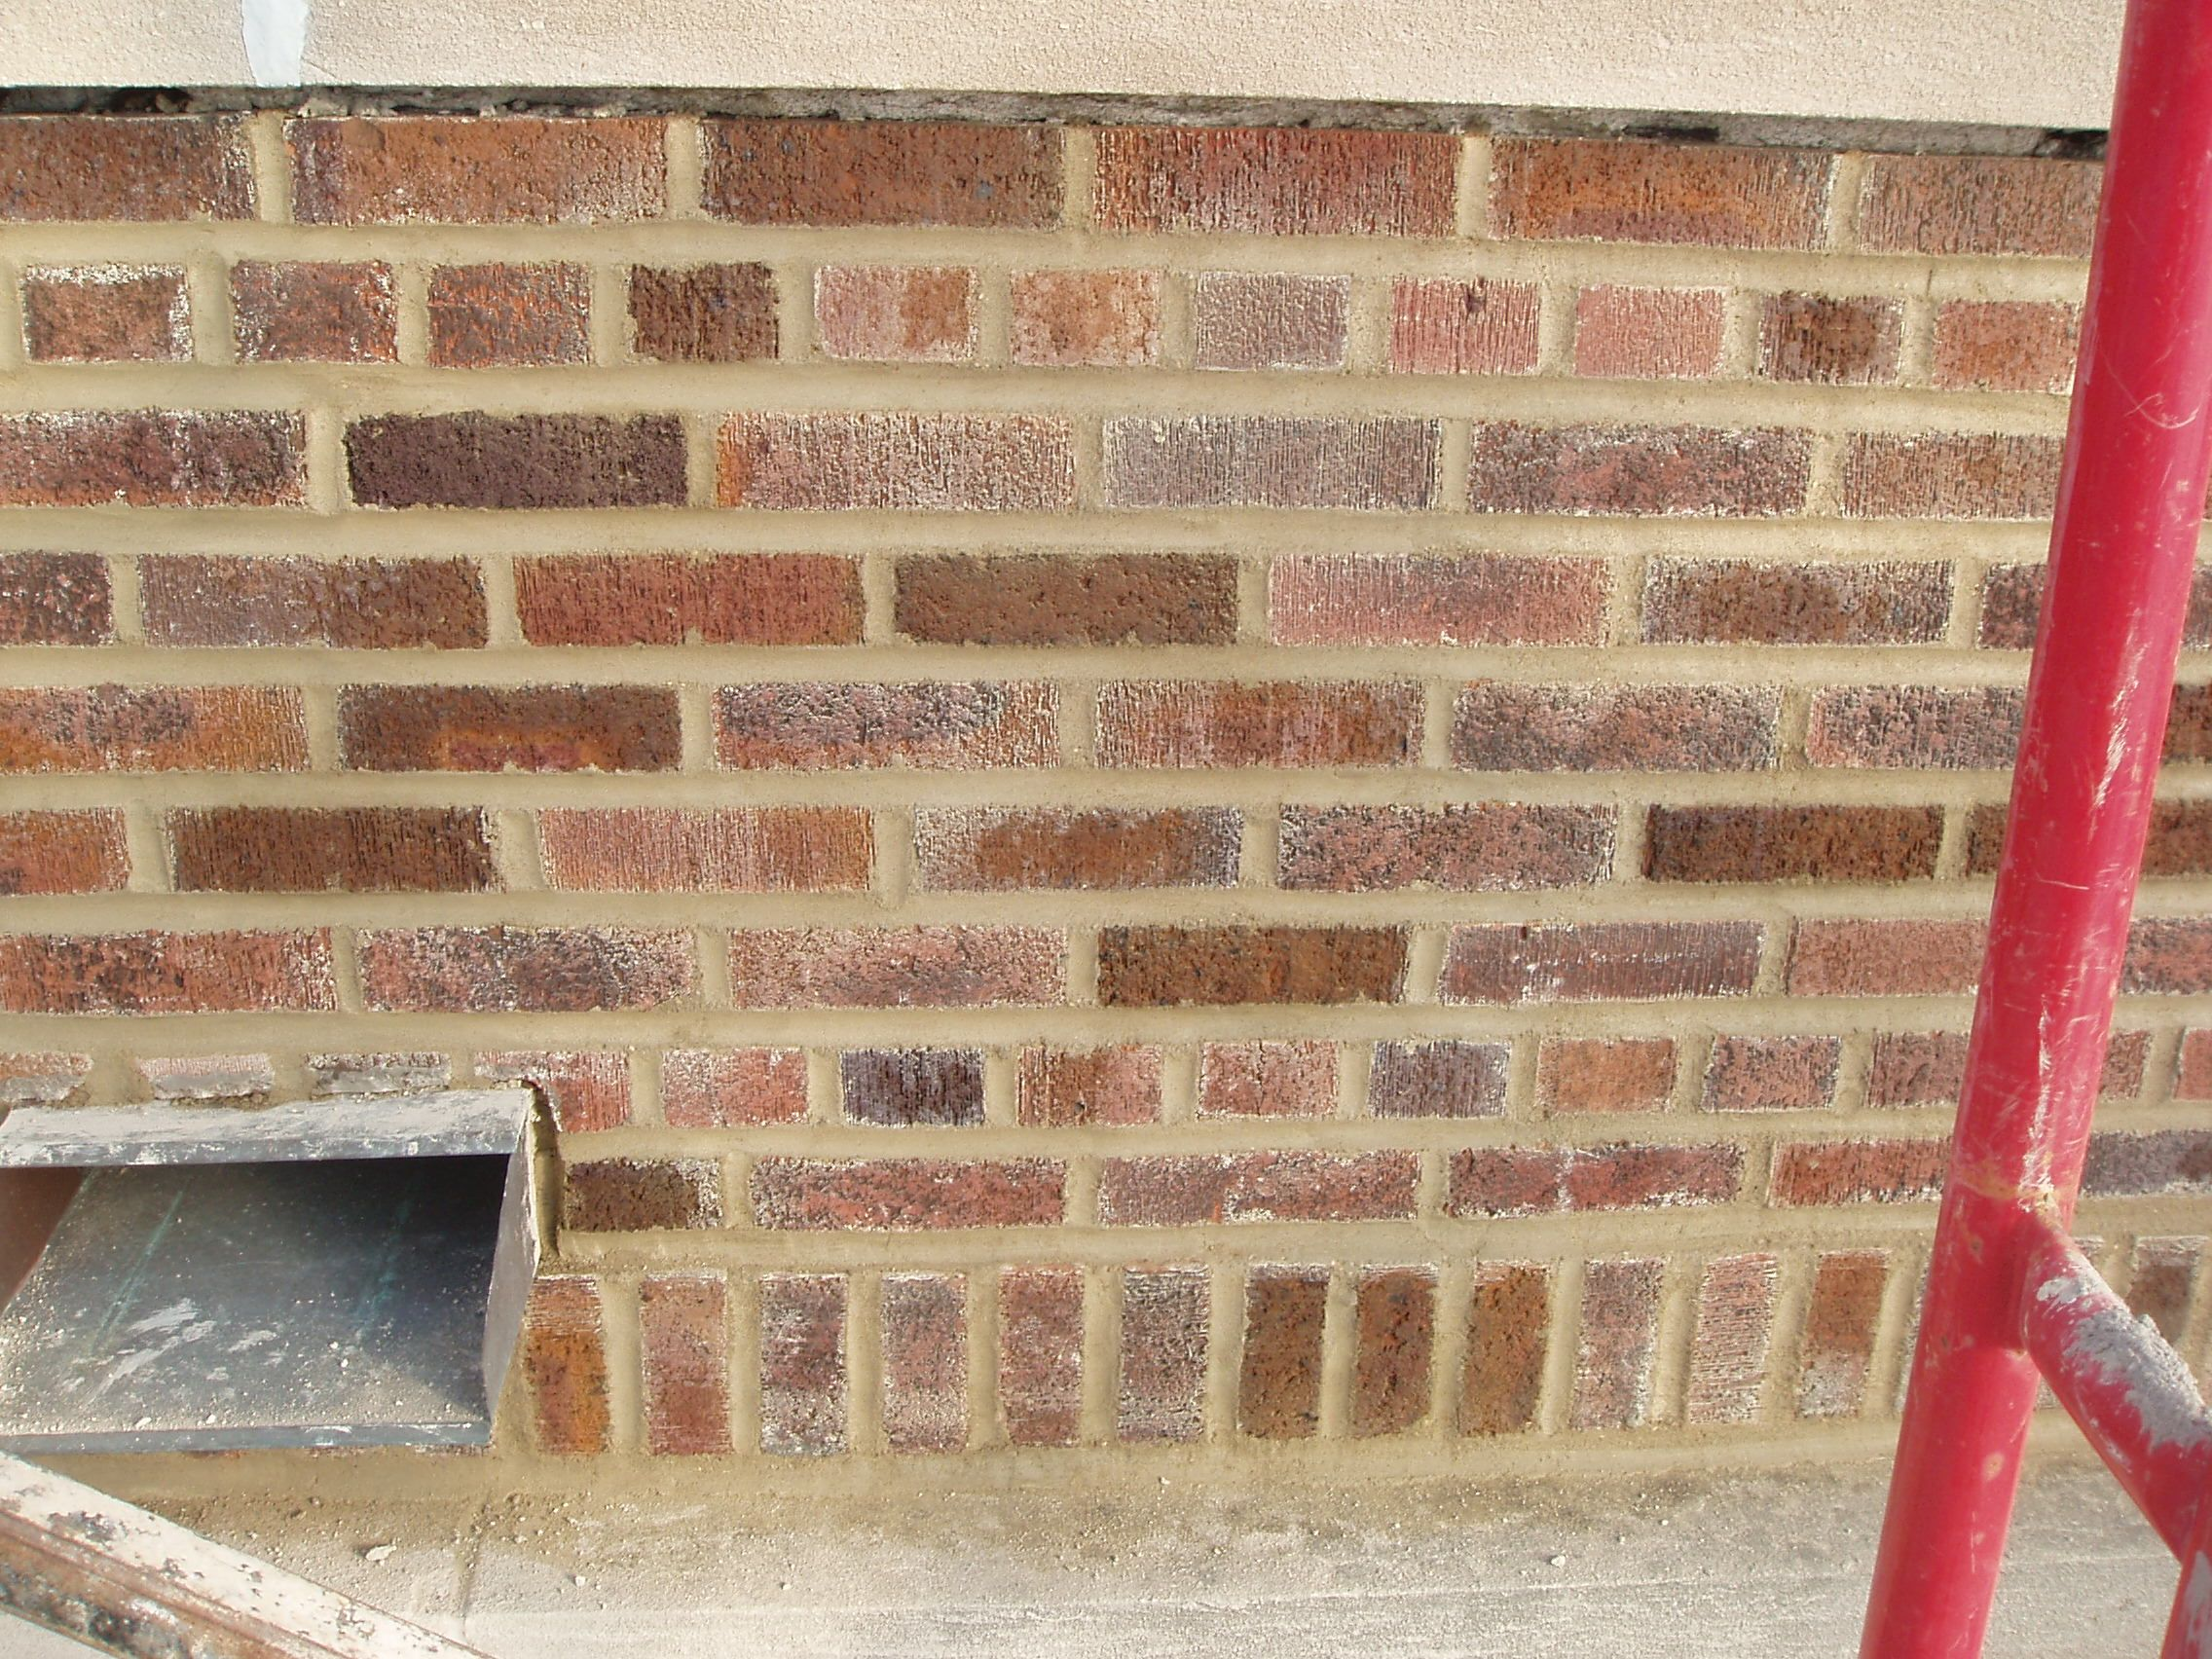 A Finished Restoration By Tuckpointing A Brick Wall Brick Stone Concrete Steps Concrete Floors